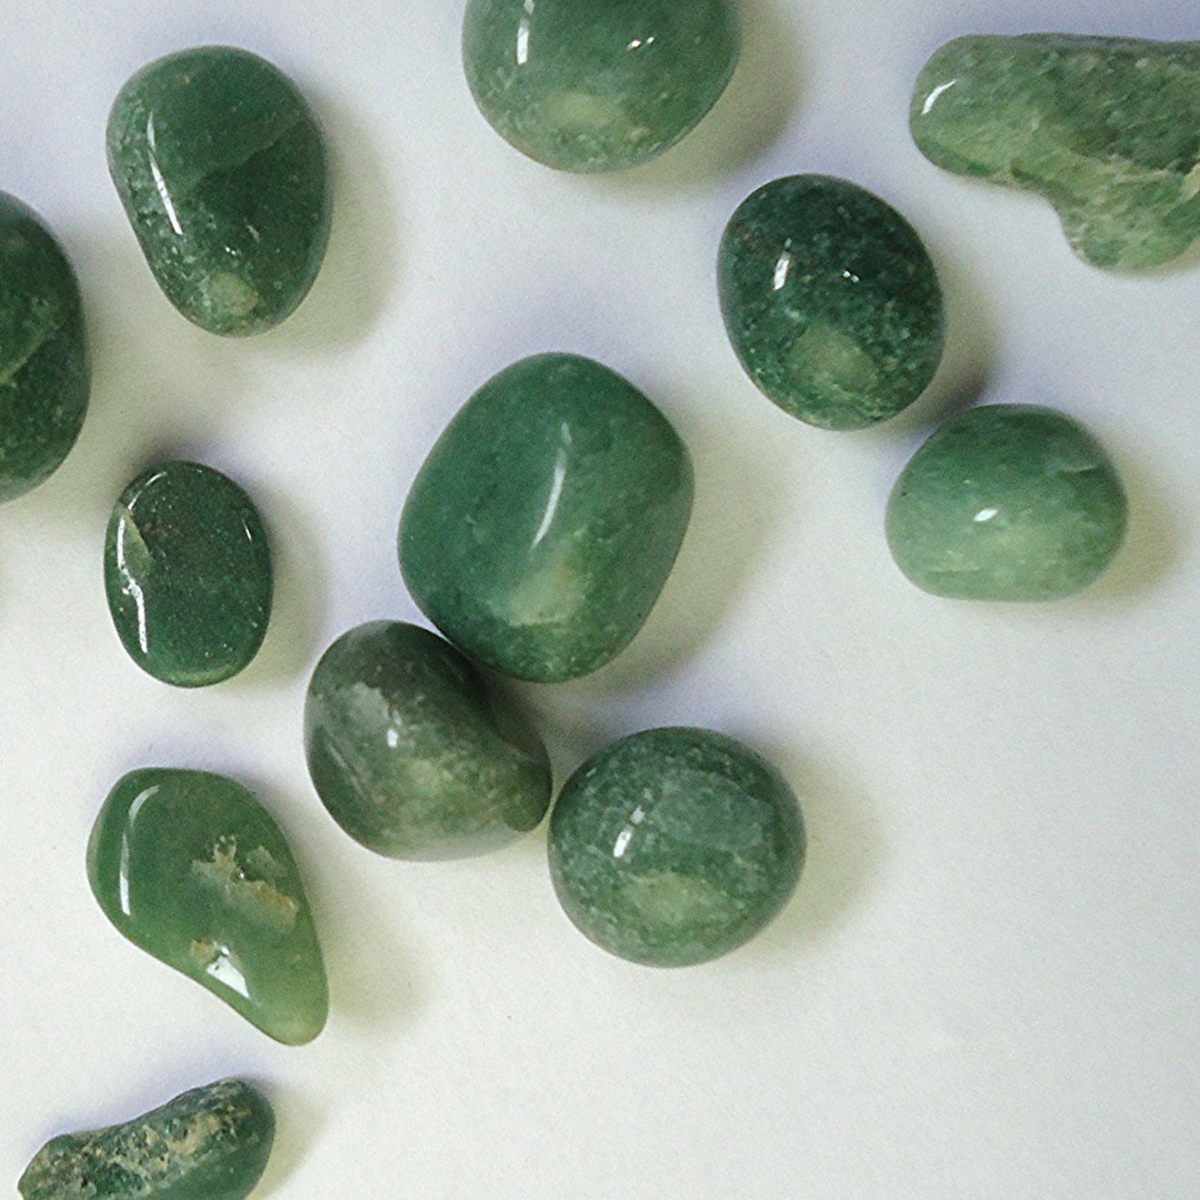 Aventurine is a popular stone used for crystal healing.